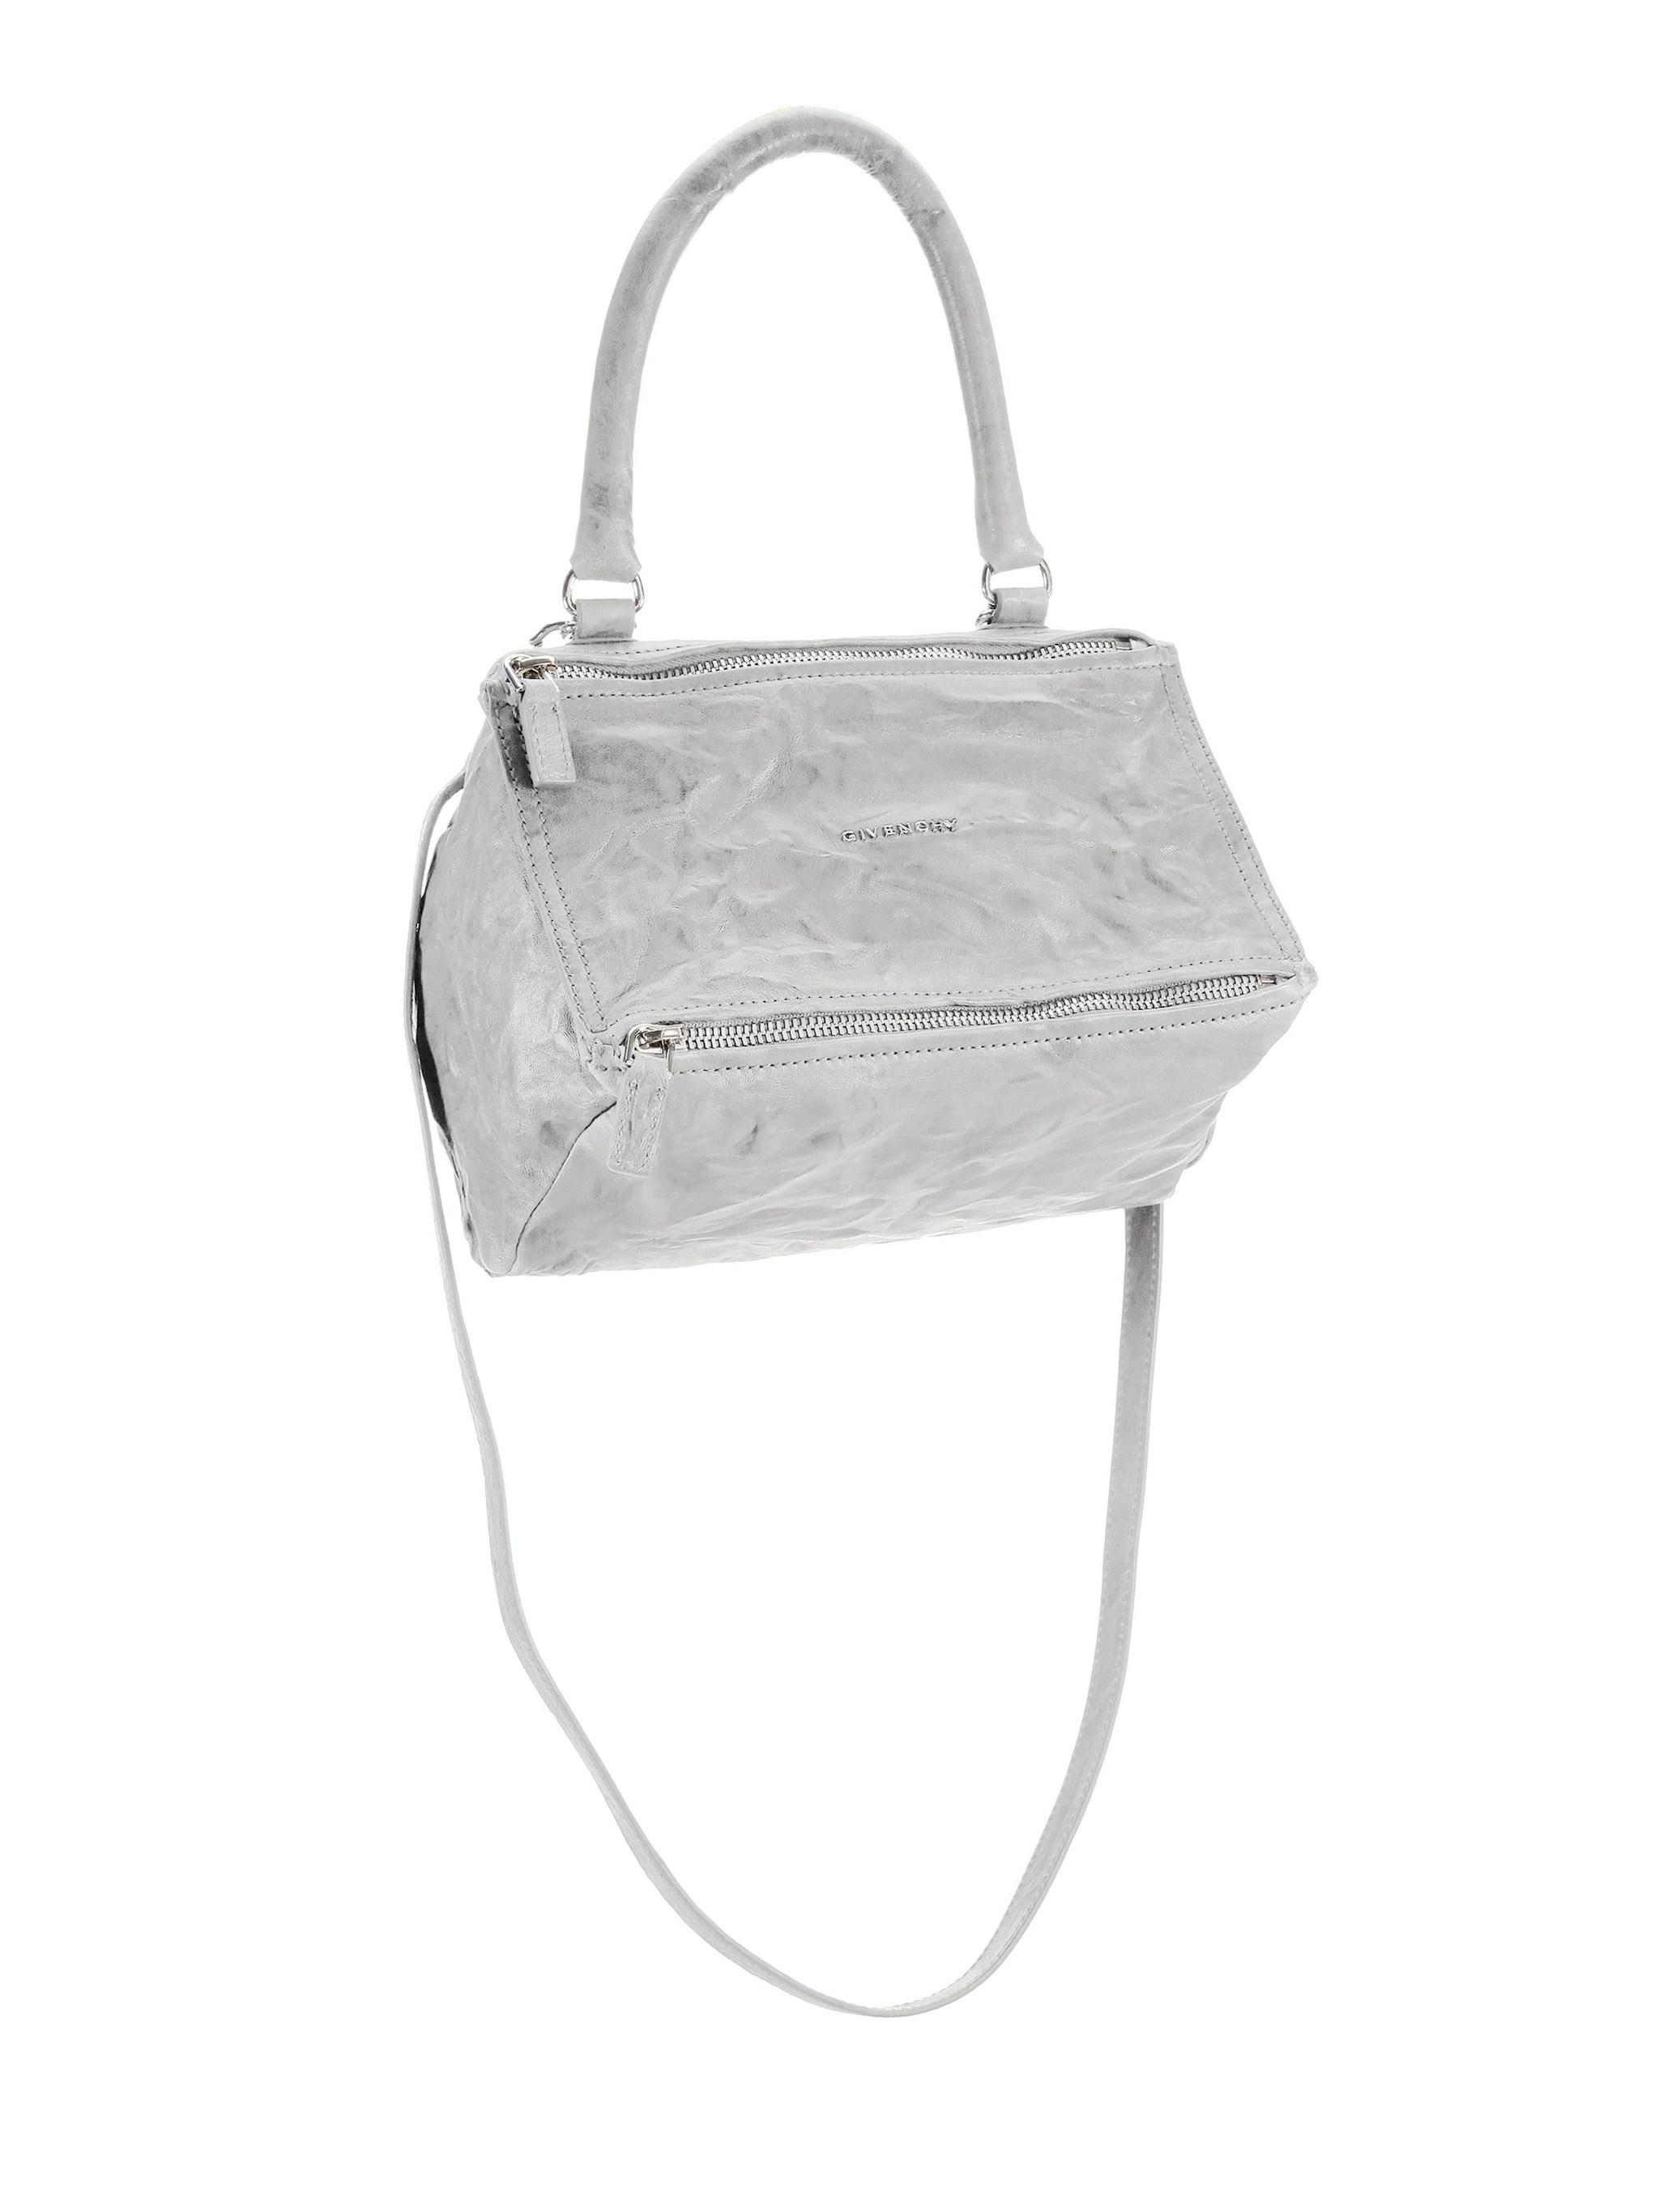 Lyst - Givenchy Women s Pandora Small Pepe Leather Shoulder Bag ... b1bde2612ed36